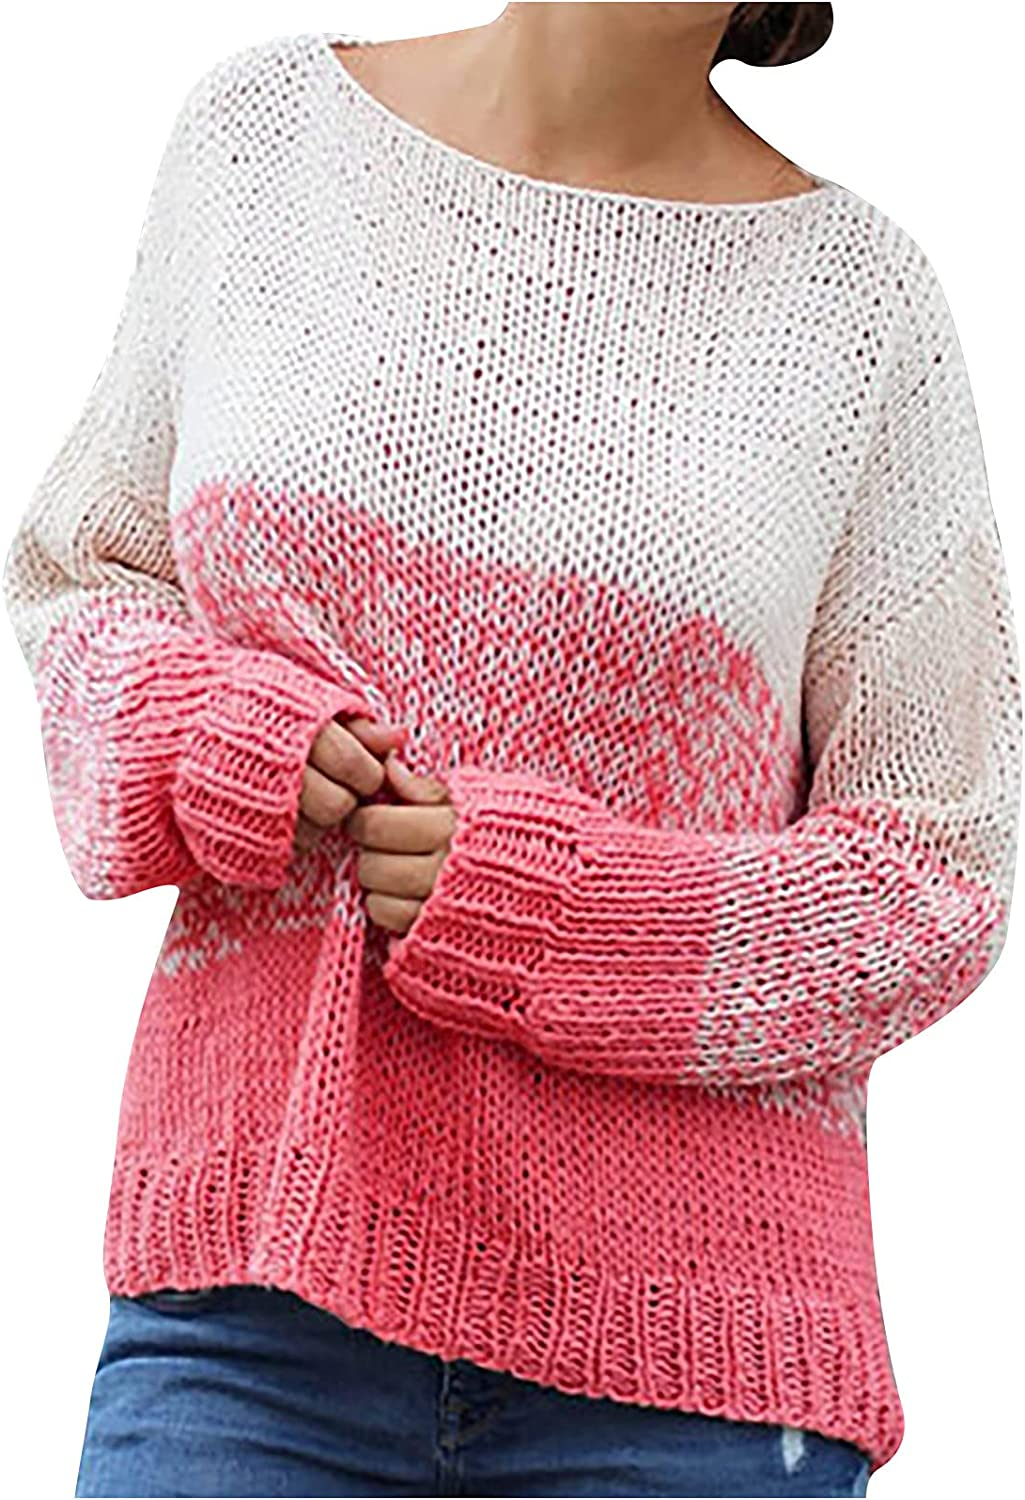 Color Block Knit Sweater for Women Long Sleeve Crew Neck Tie Dye Knitted Casual Loose Pullover Jumper Shirts Tops